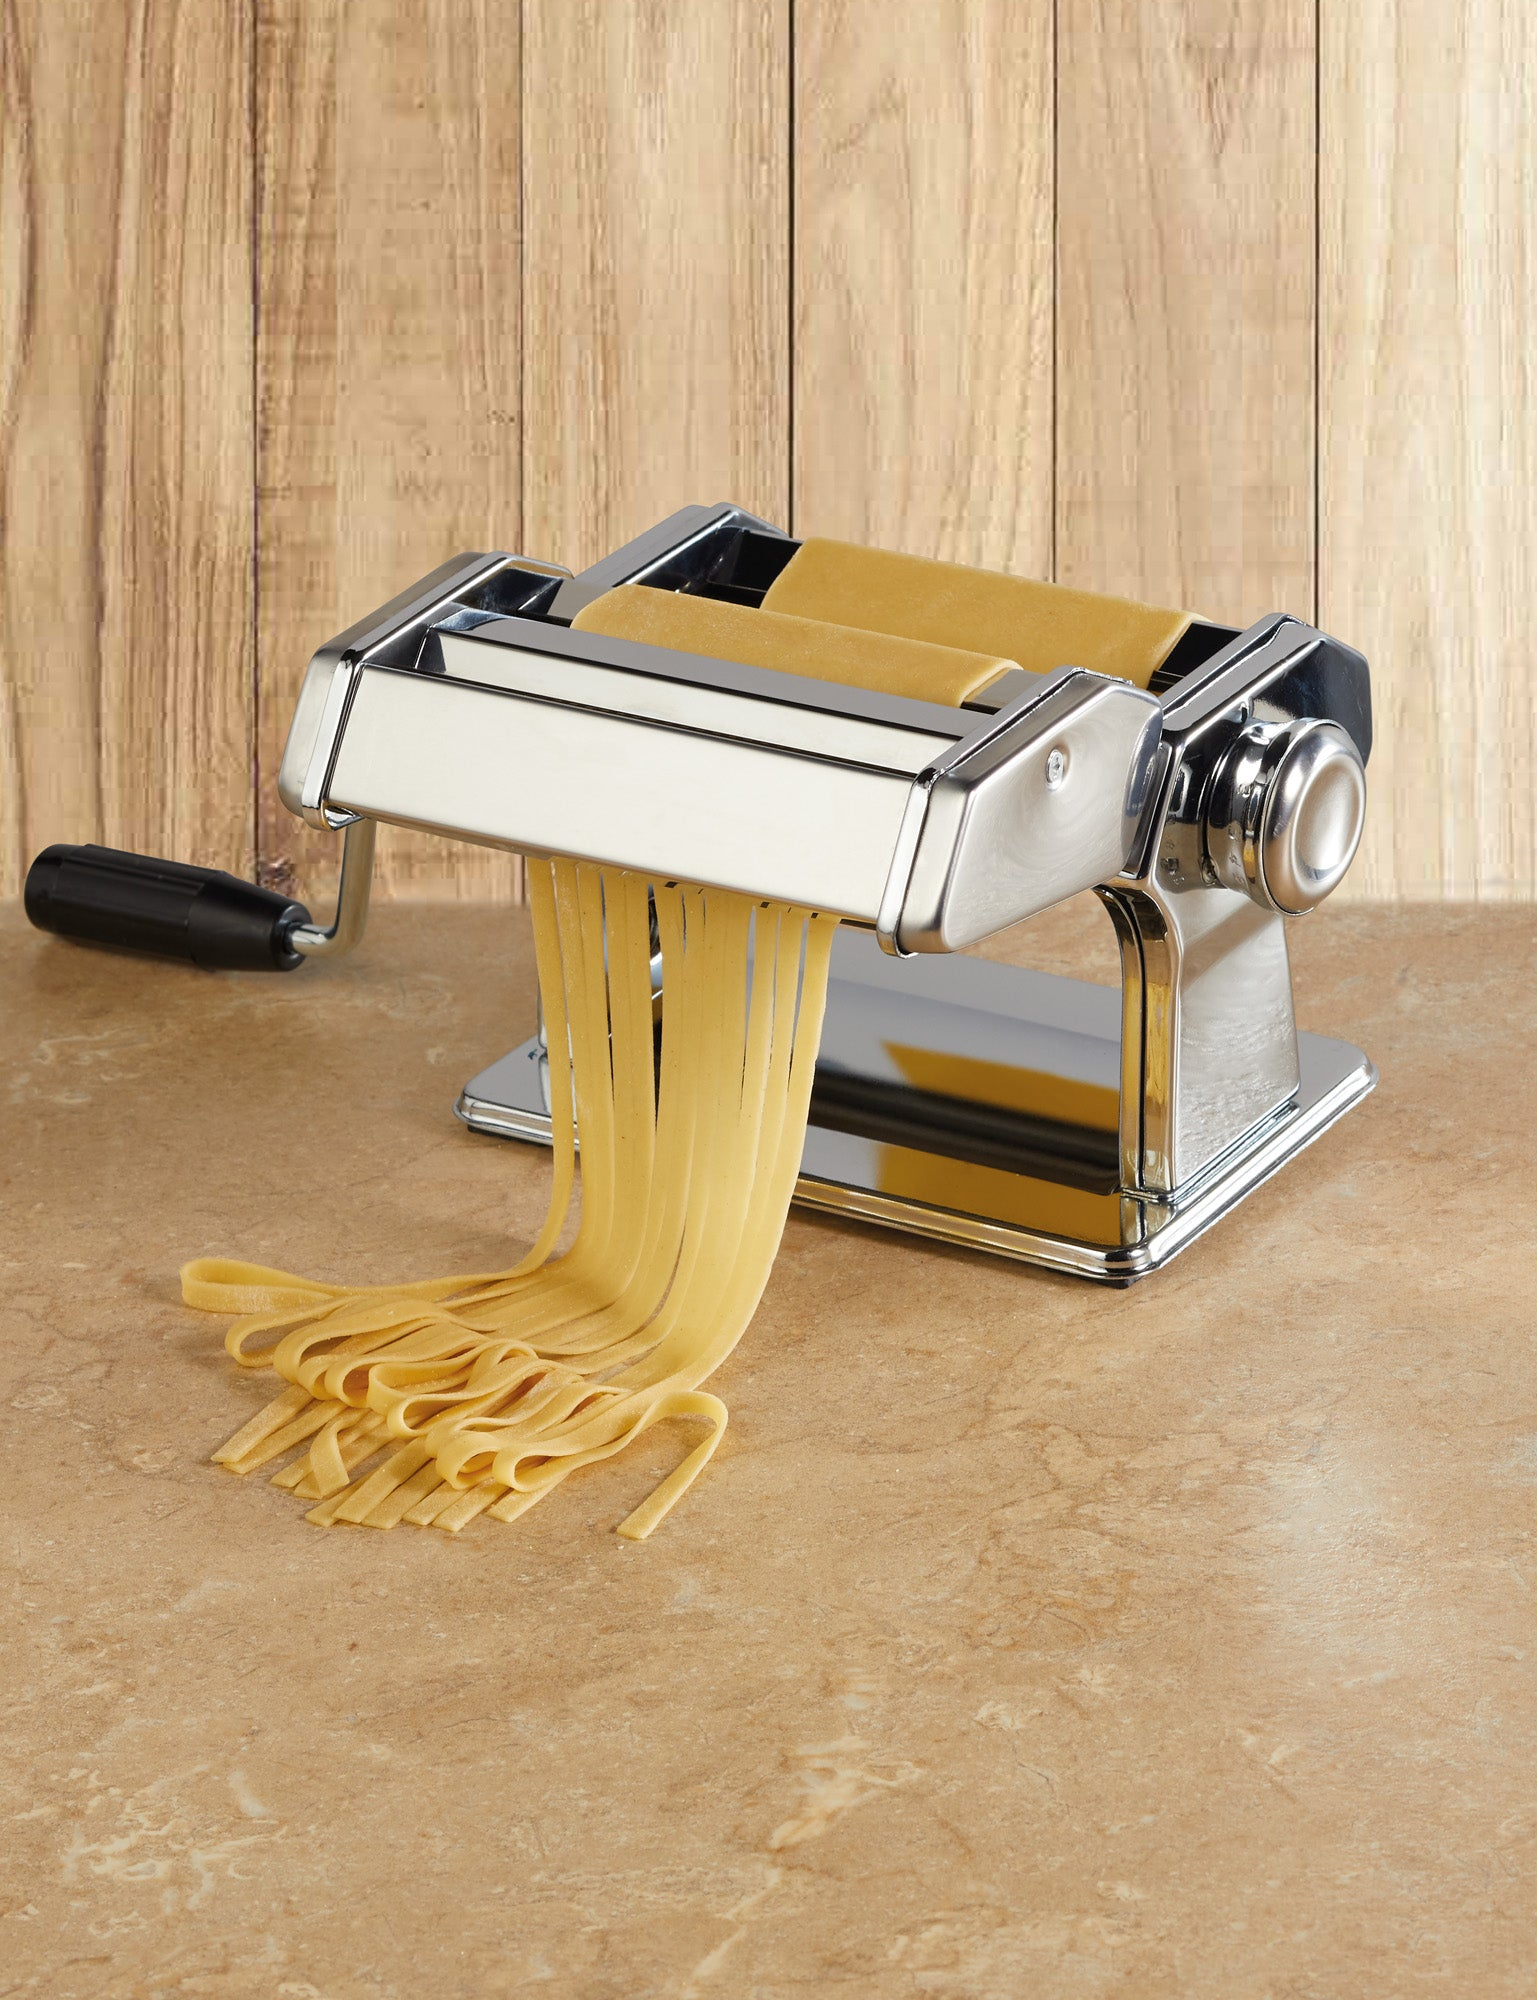 Deluxe Double Cutter Pasta Machine Measures 20 x 34 x 25cm